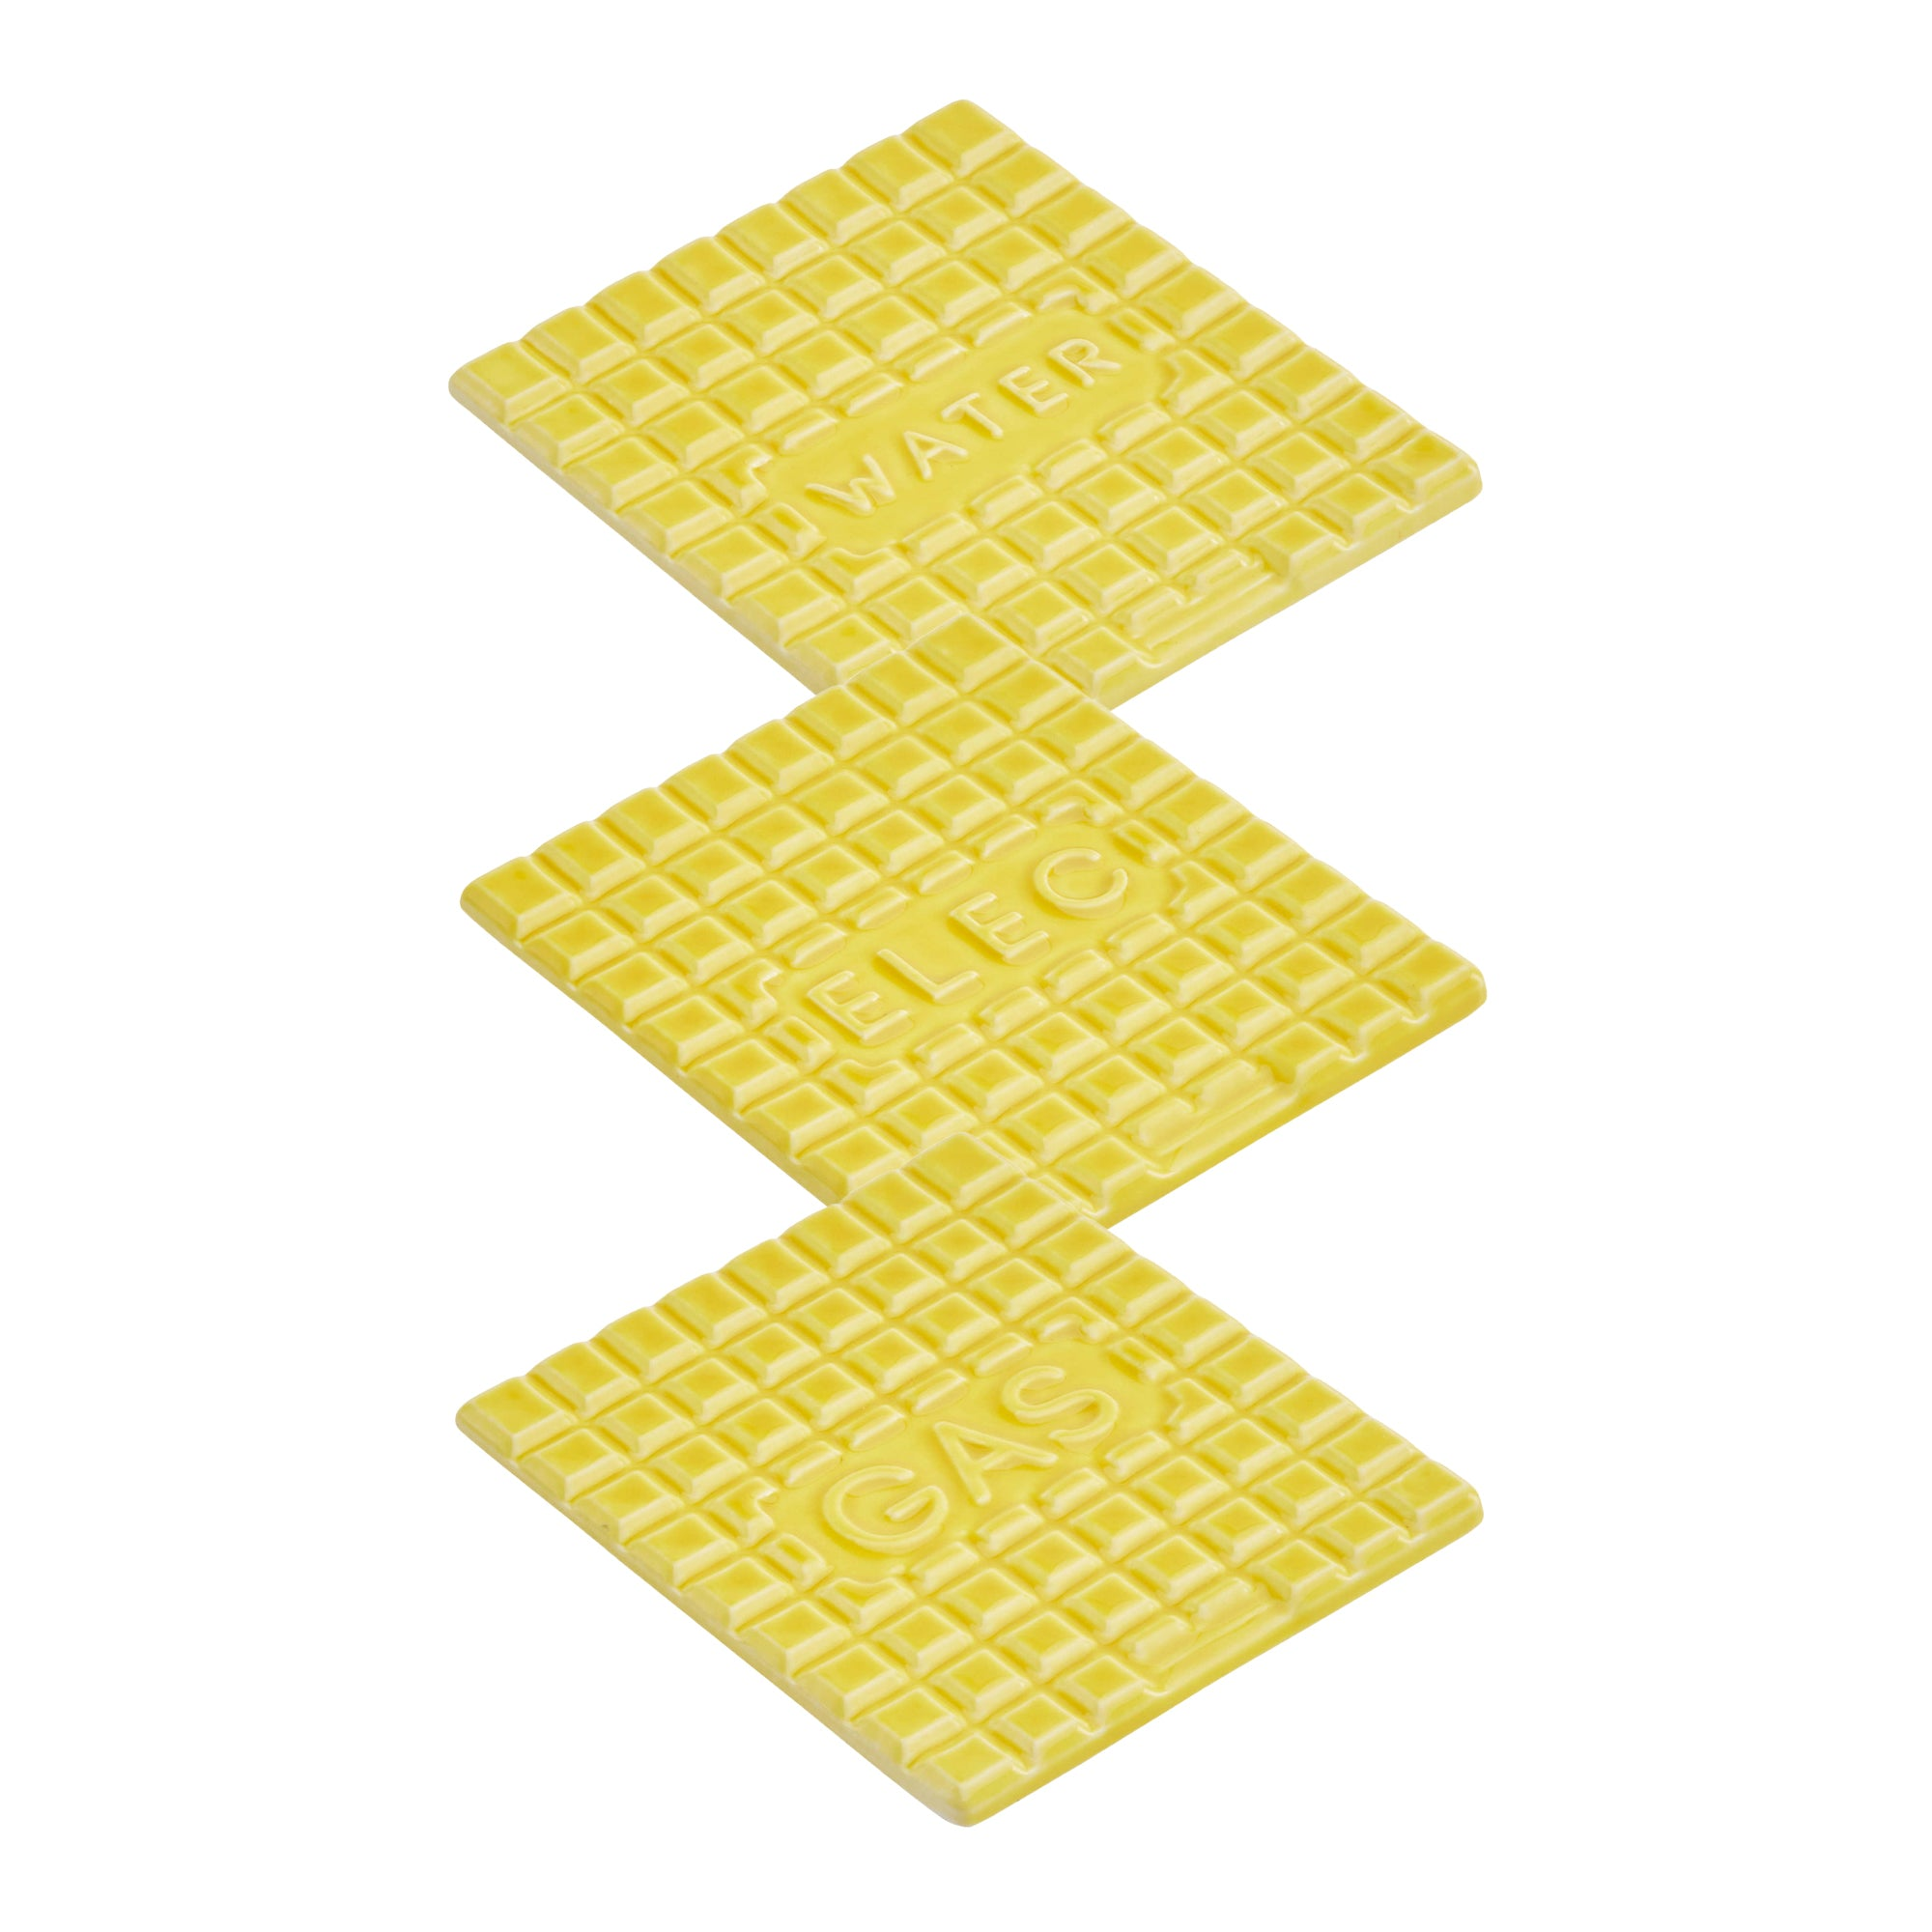 This Yellow Manhole Coaster set is now available to buy from the warehouse home shop